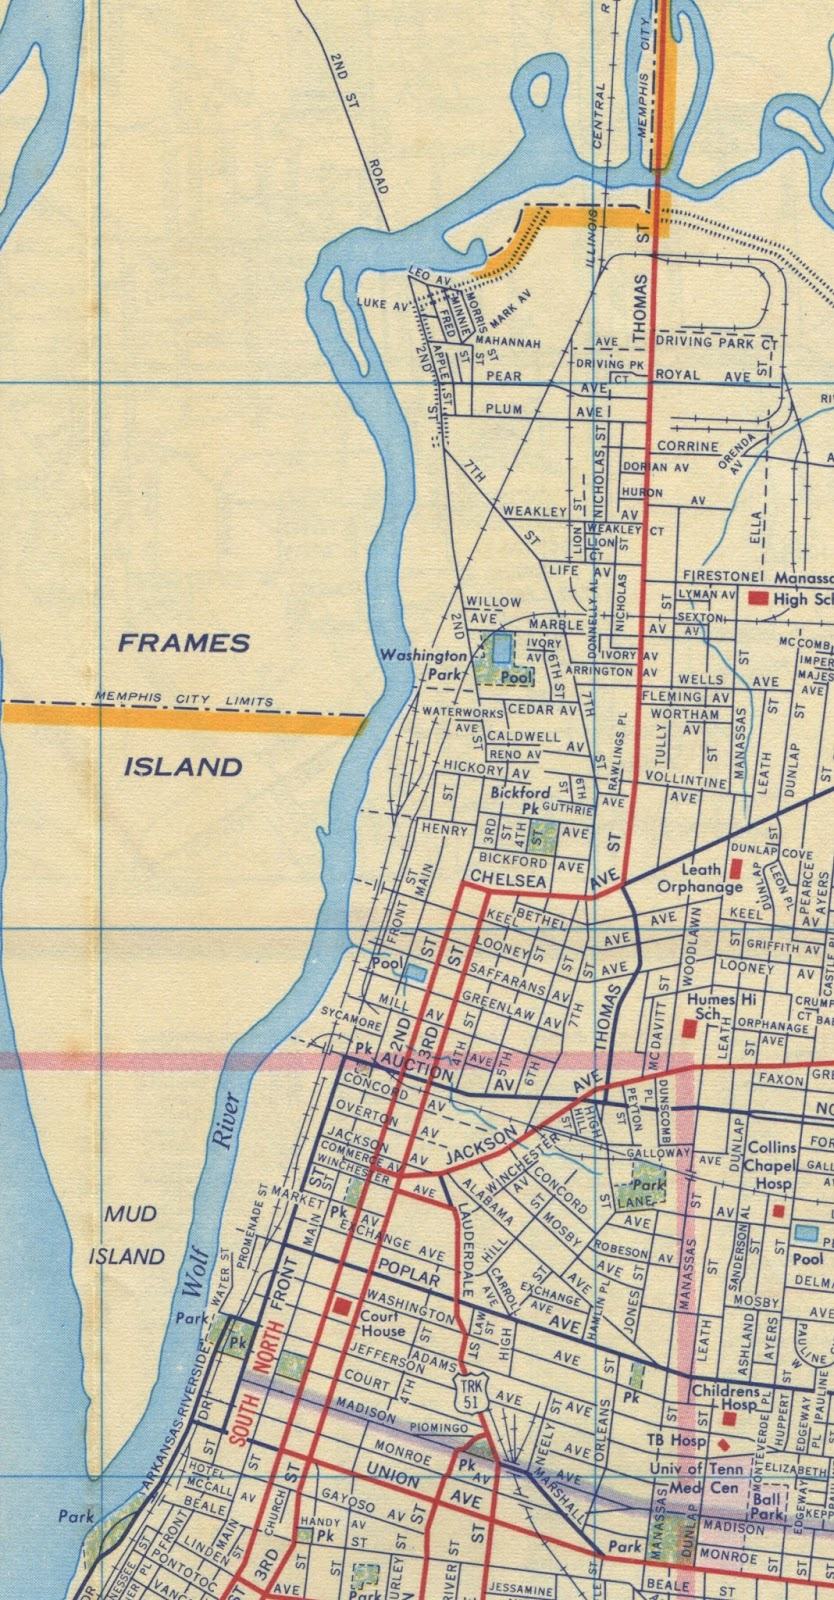 this 1958 map reflects that only the southern portion of mud island was mud island its northern area was called frames island